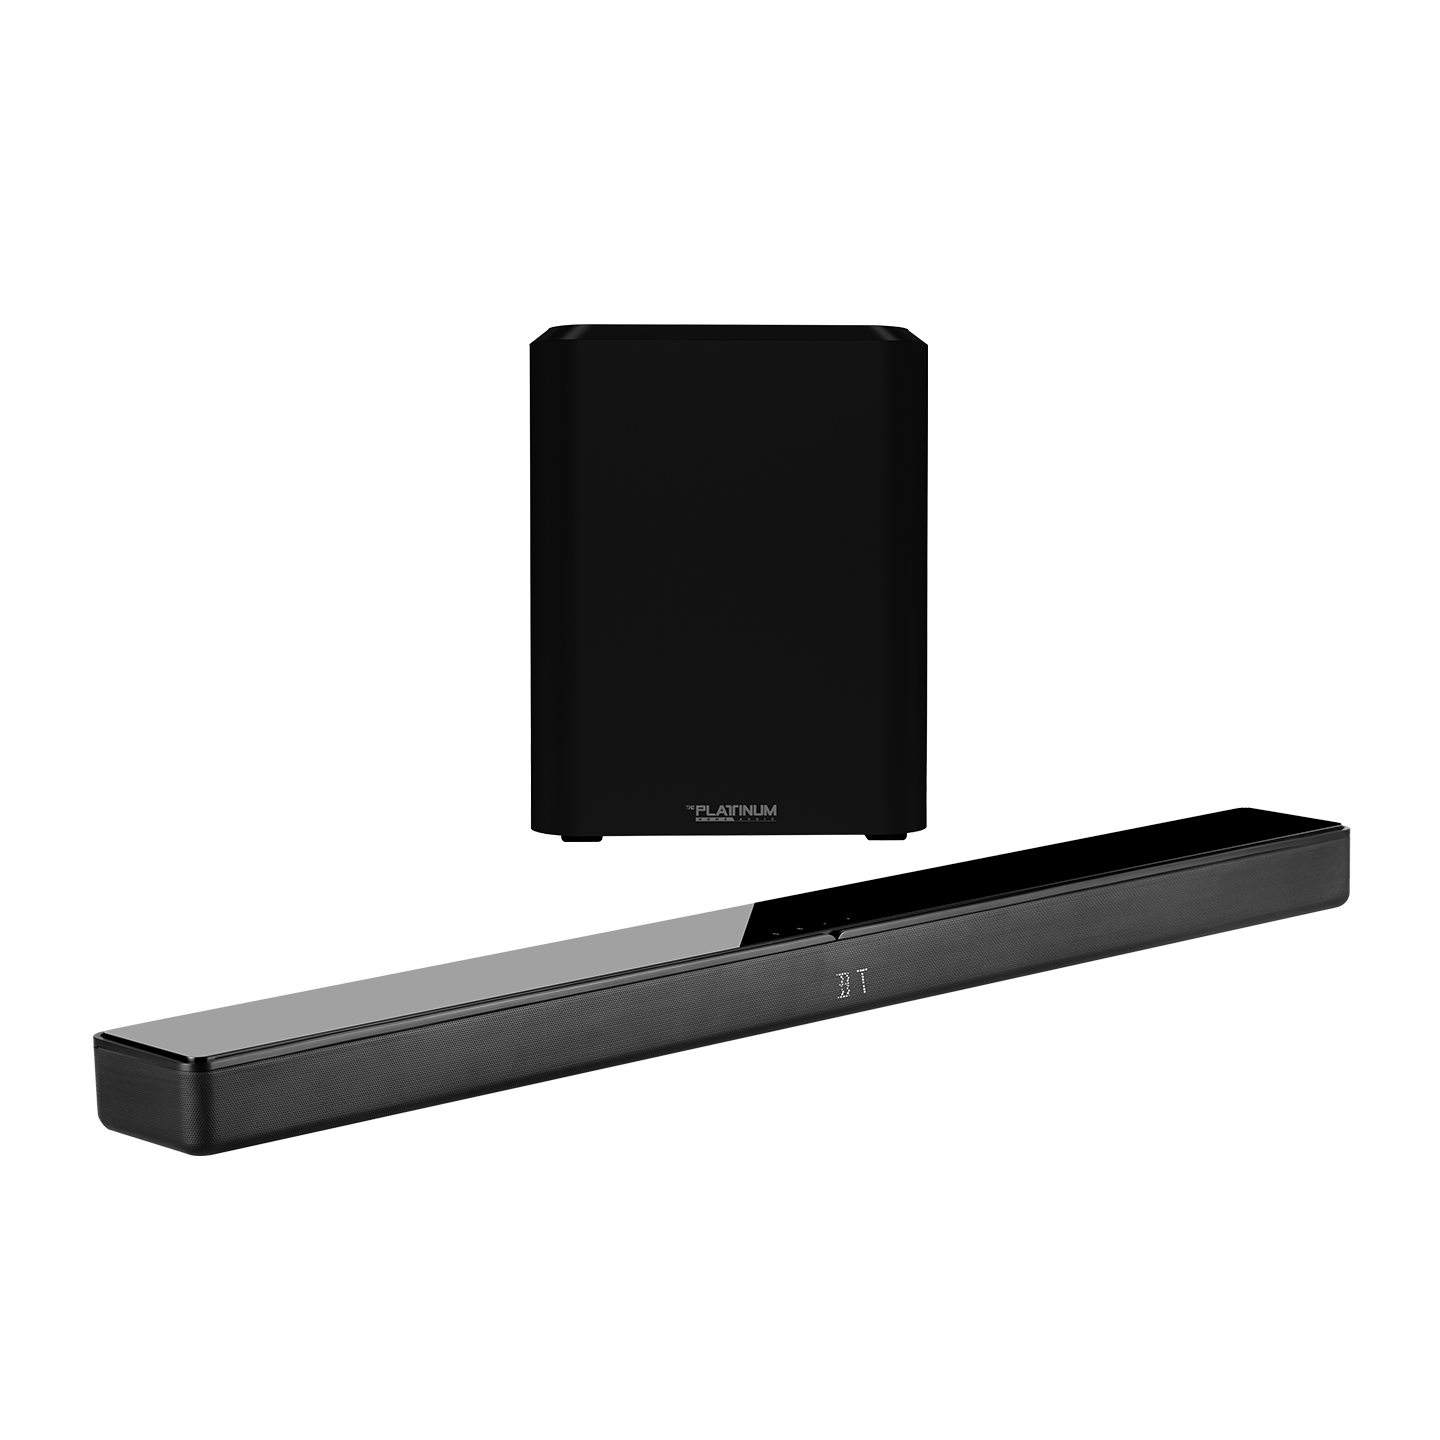 S80 PTSB-240 SOUNDBAR with Wireless Sub Woofer